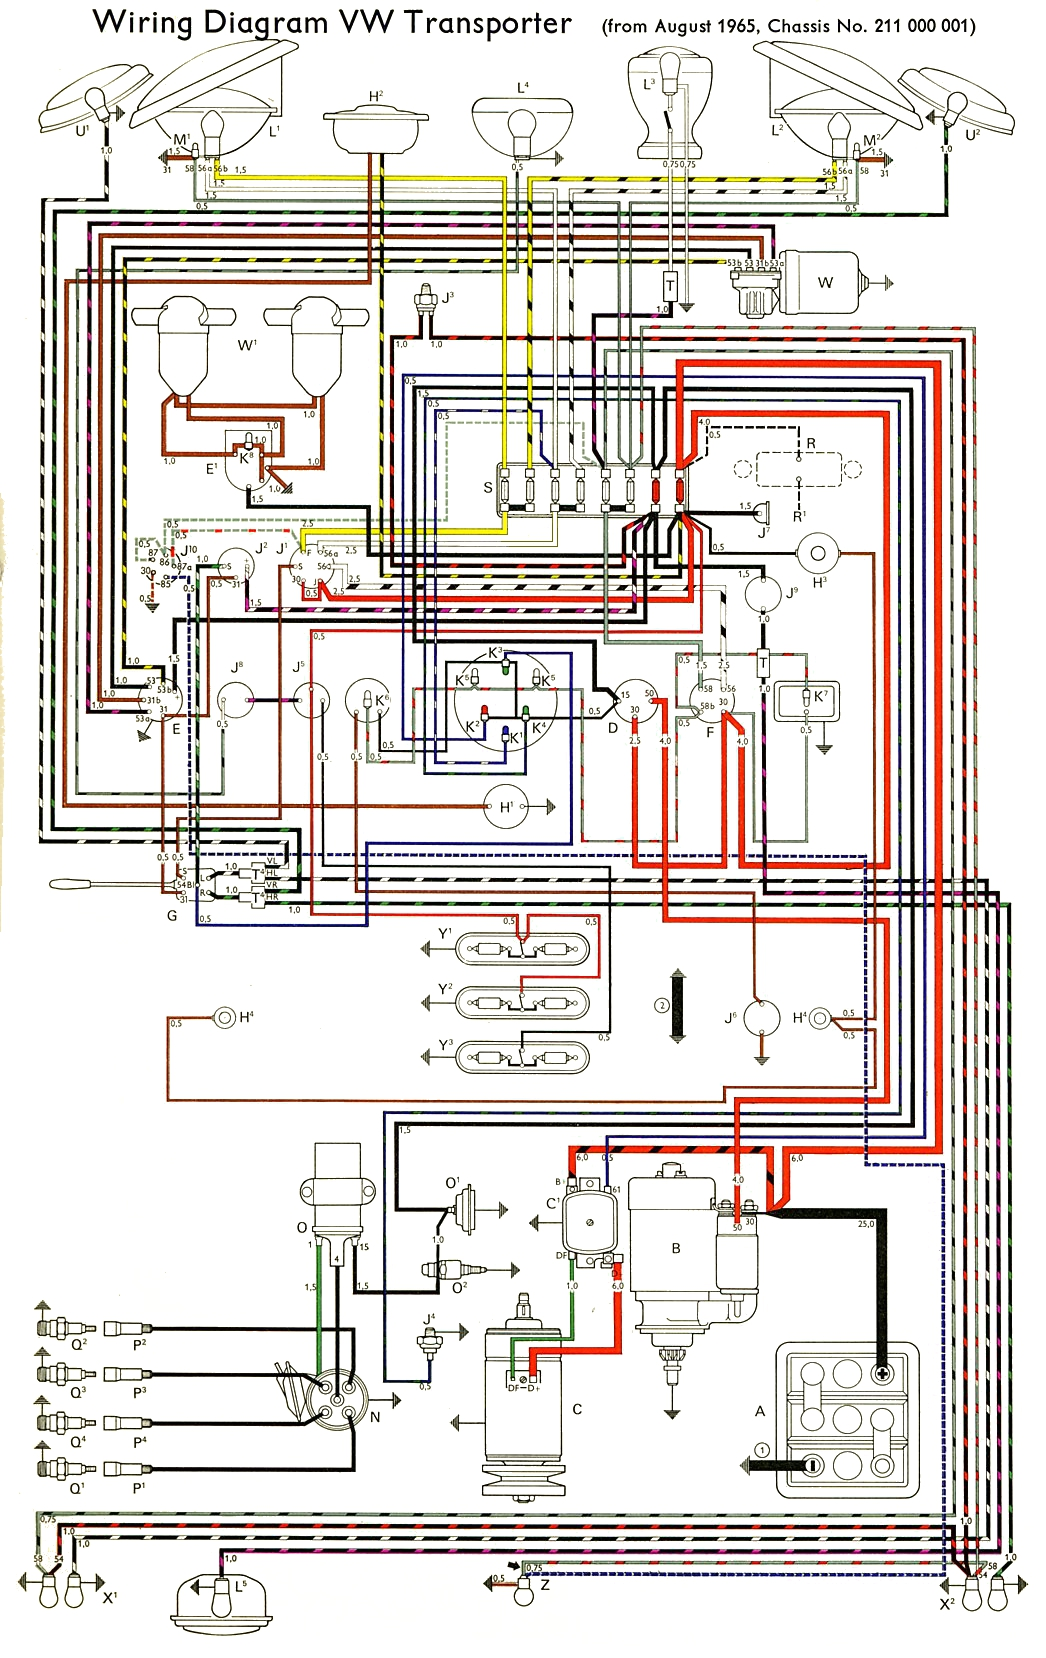 Vw Beetle Radio Wiring Diagram Archive Of Automotive Volkswagen Car Stereo Harness For 2004 Schematics Rh Readinghypnotherapist Co Uk 1998